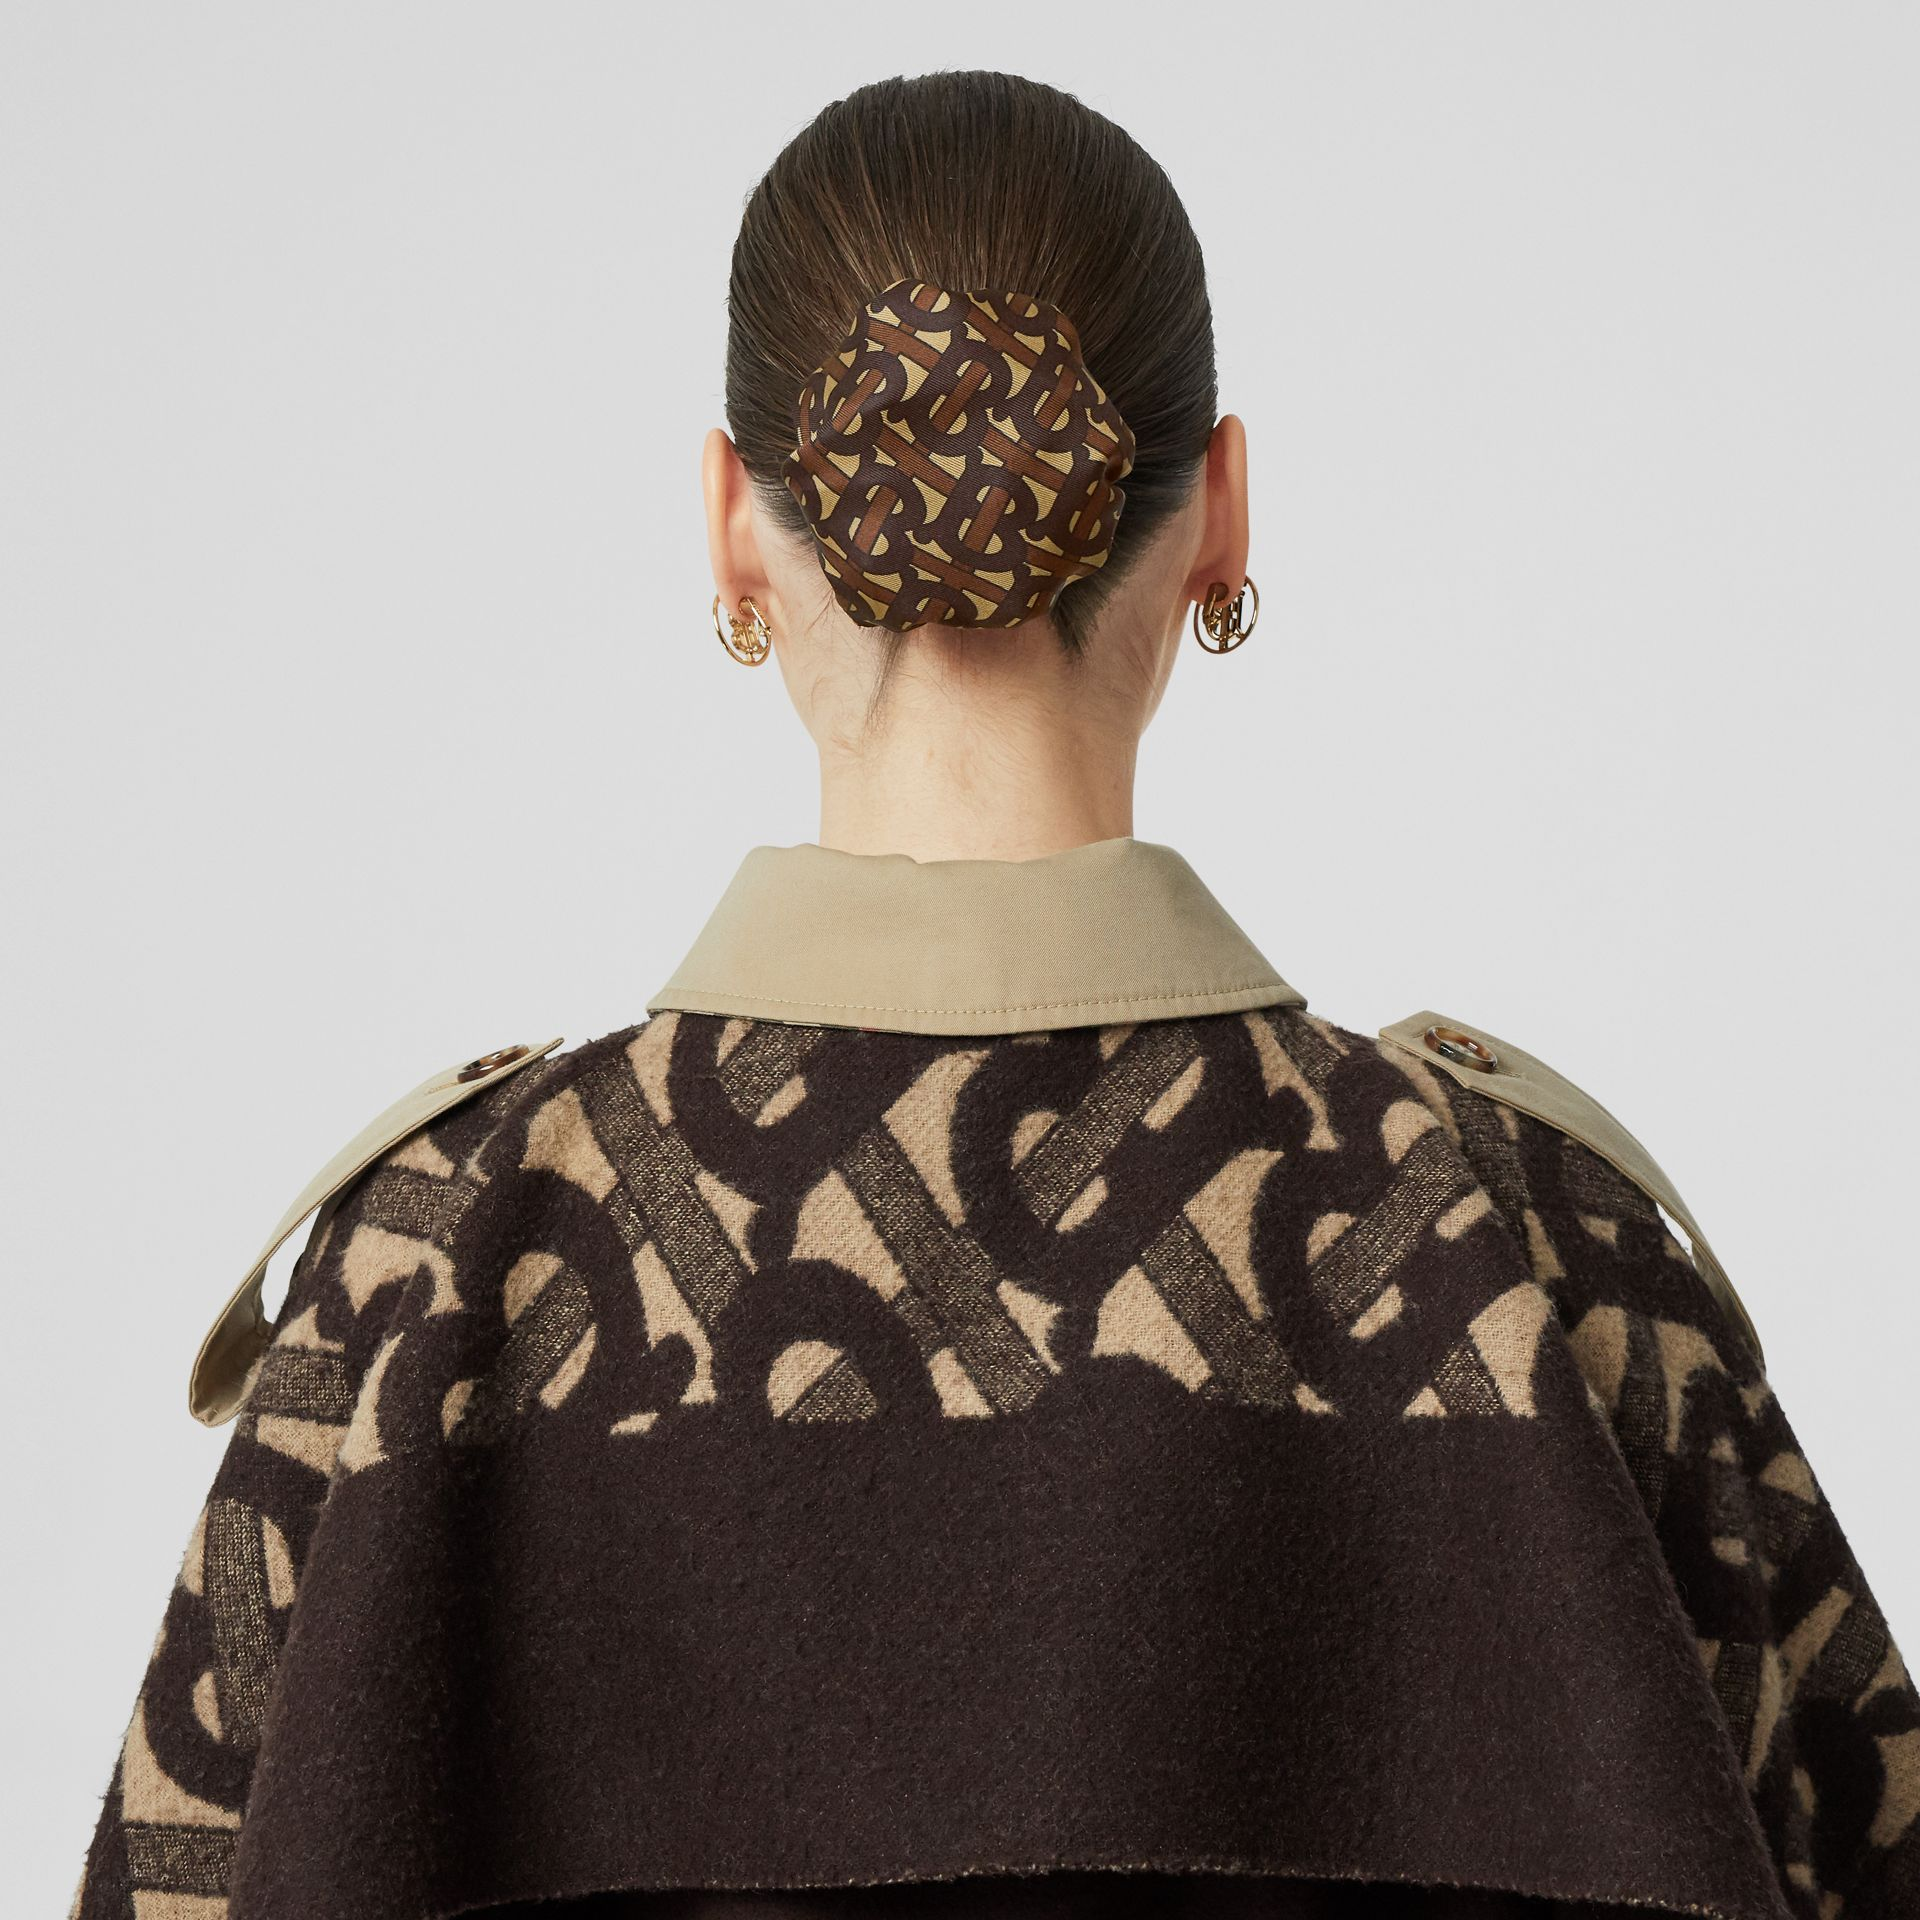 Monogram Print Silk Chignon Cover in Brown - Women | Burberry - gallery image 2